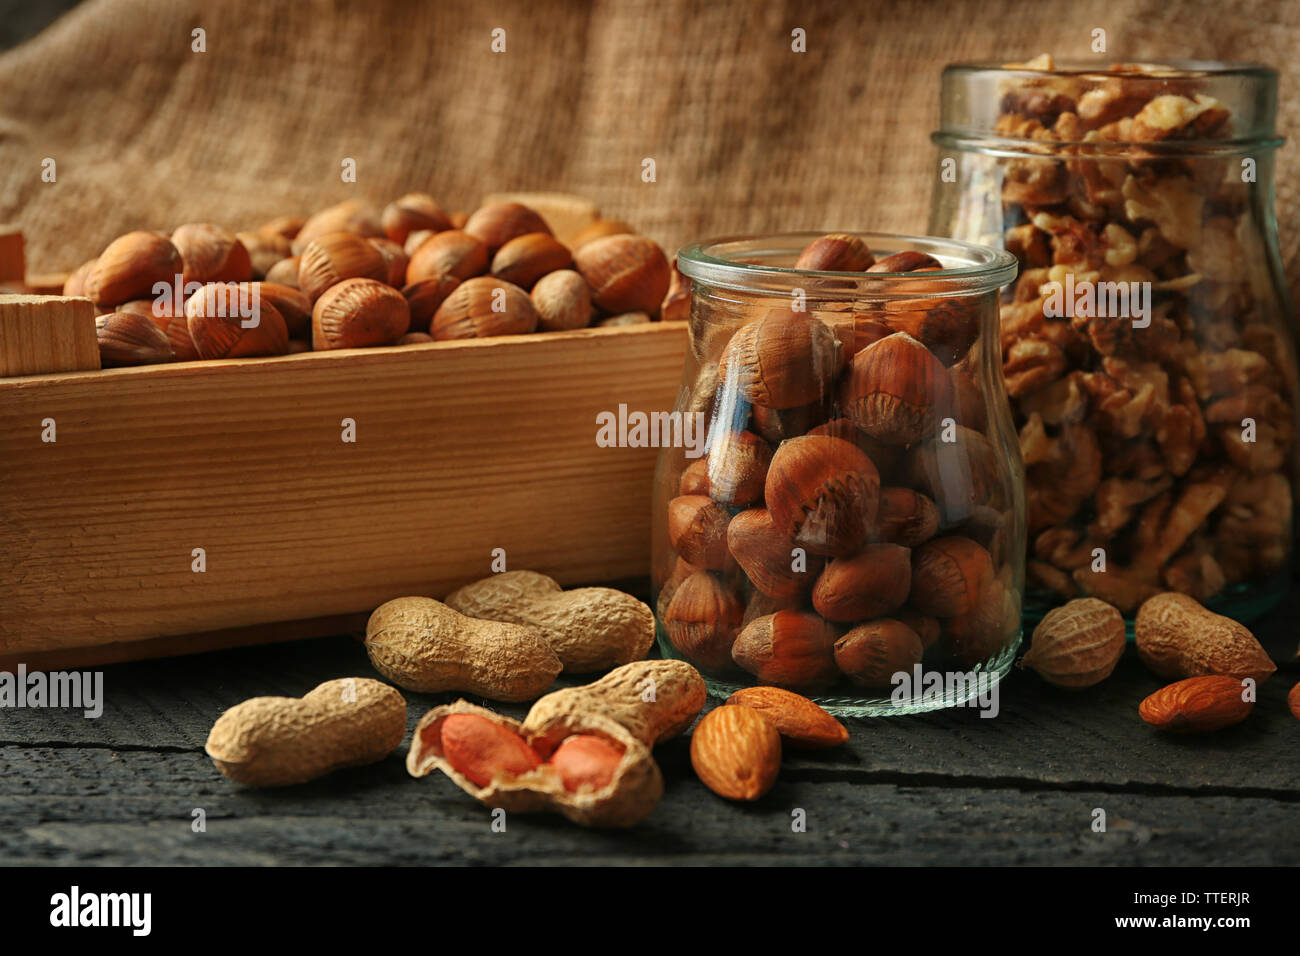 Mix of nuts in the glass jars and wooden box, on the table Stock Photo